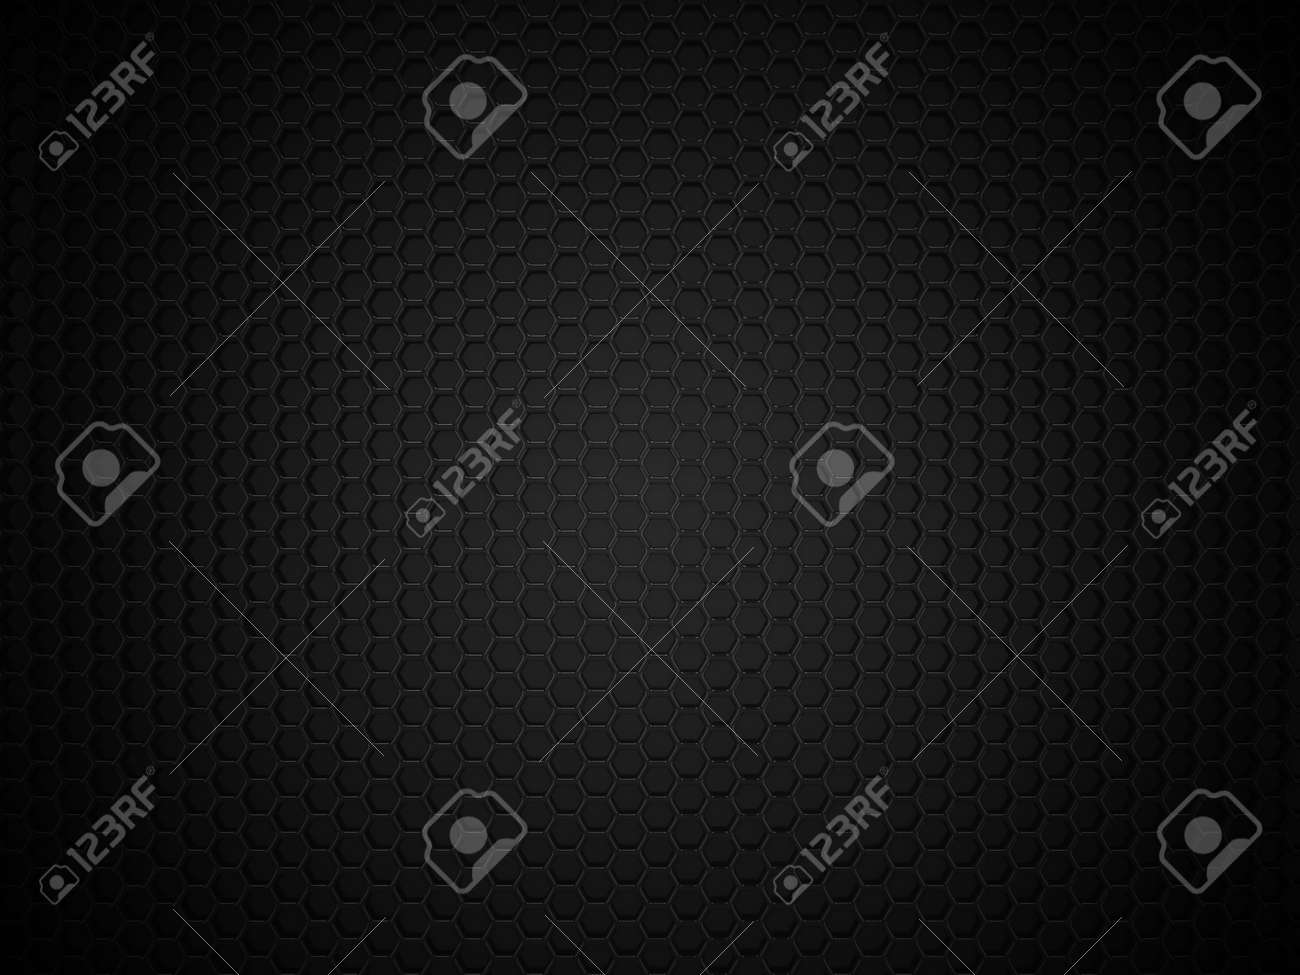 Abstract black hexagonal carbon background - 45142025